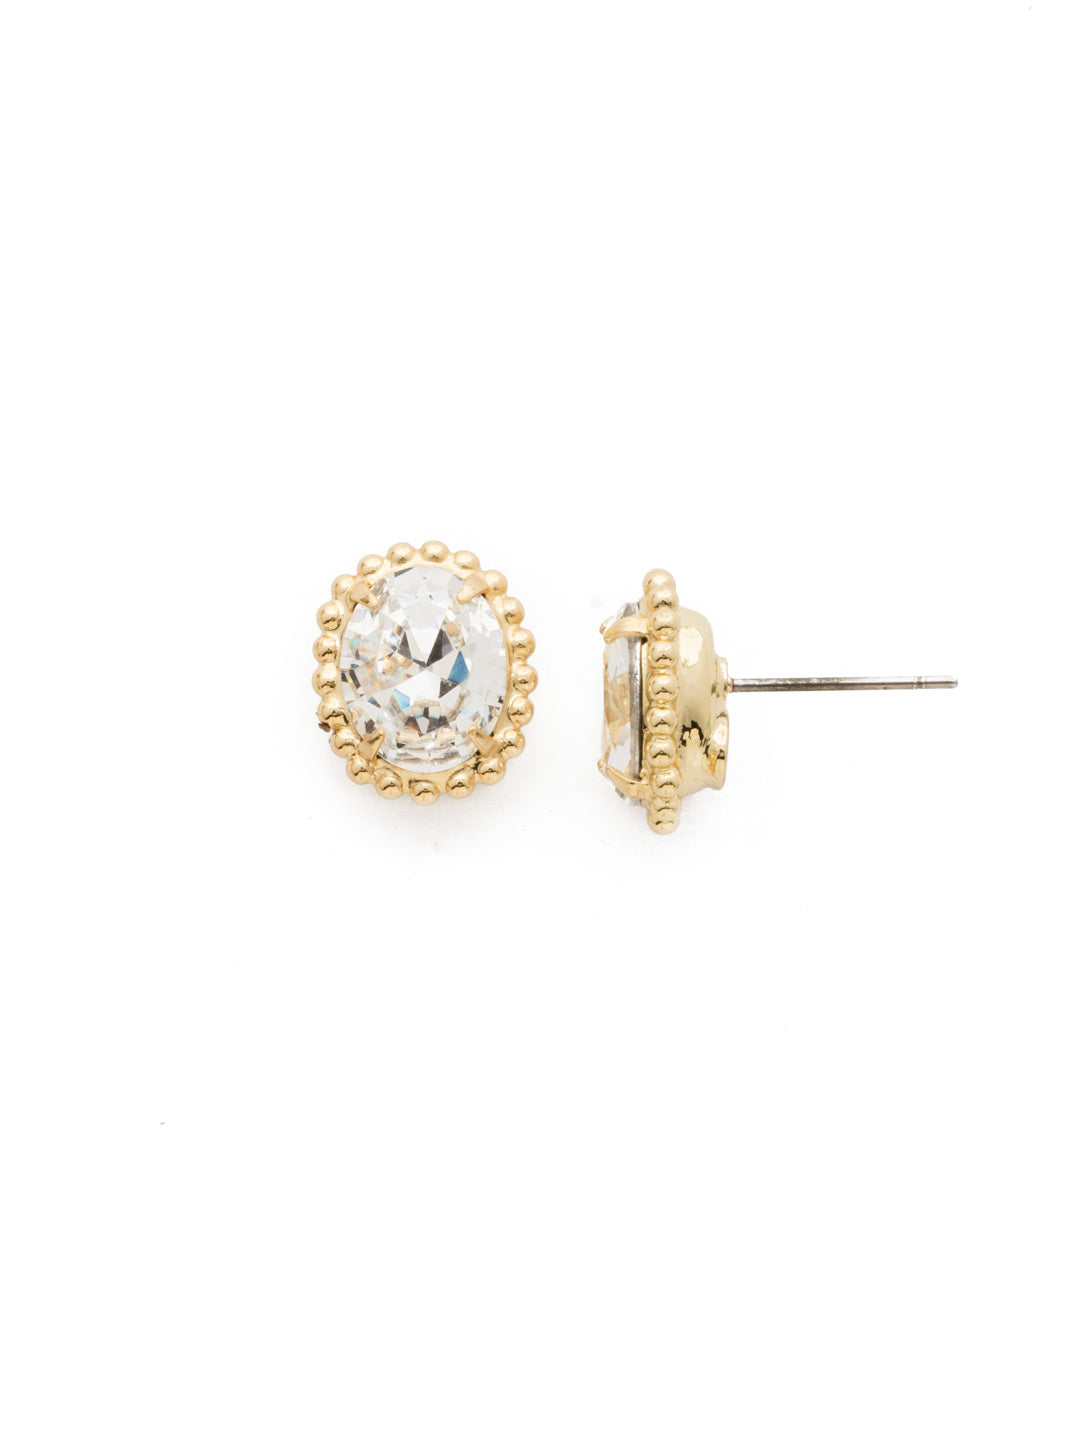 Oval-Cut Solitaire Stud Earrings - EDQ10BGCRY